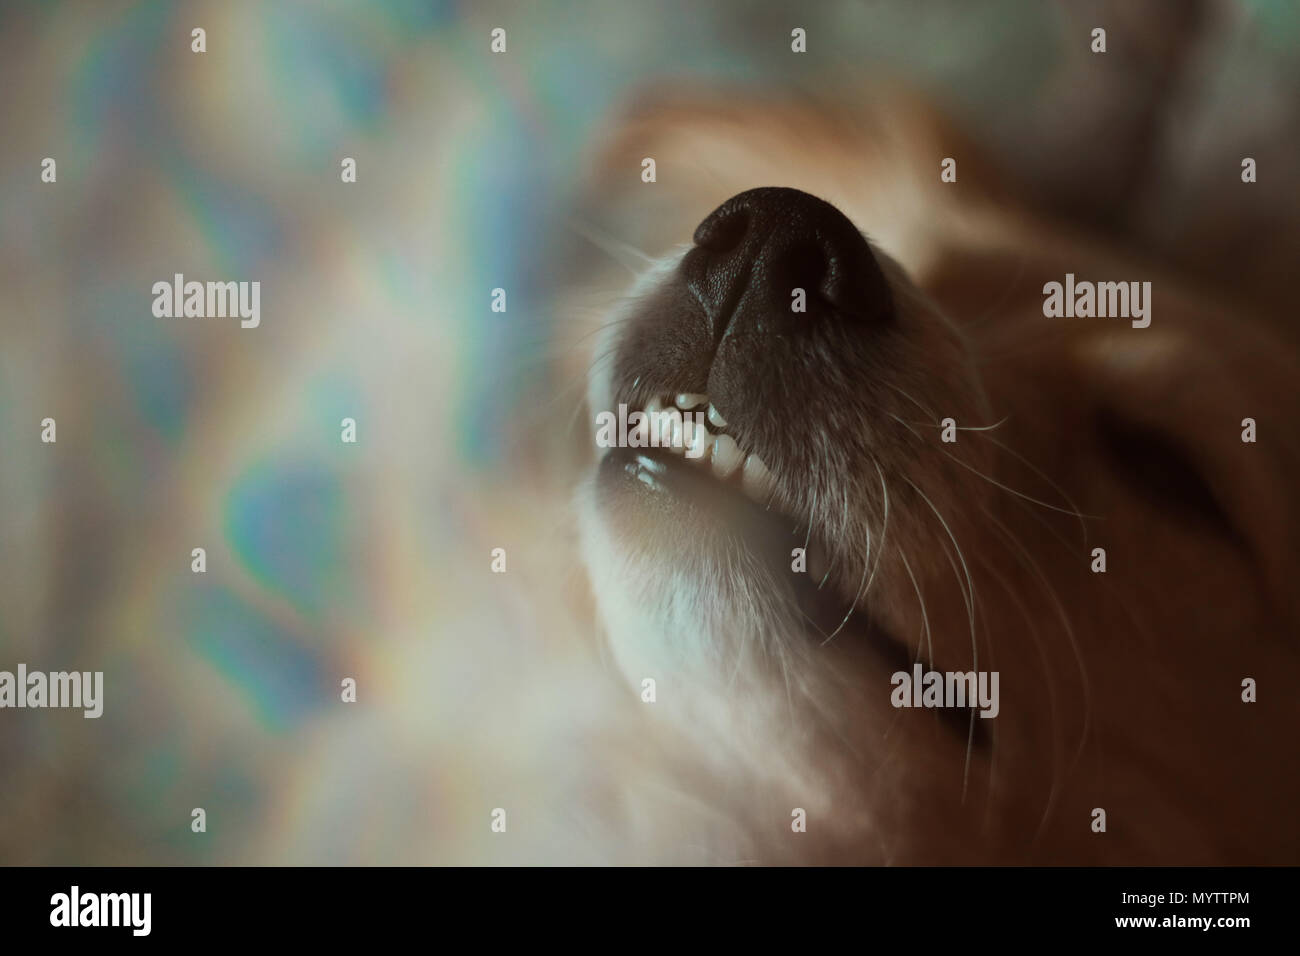 Smiling dog with rainbow lights - Stock Image